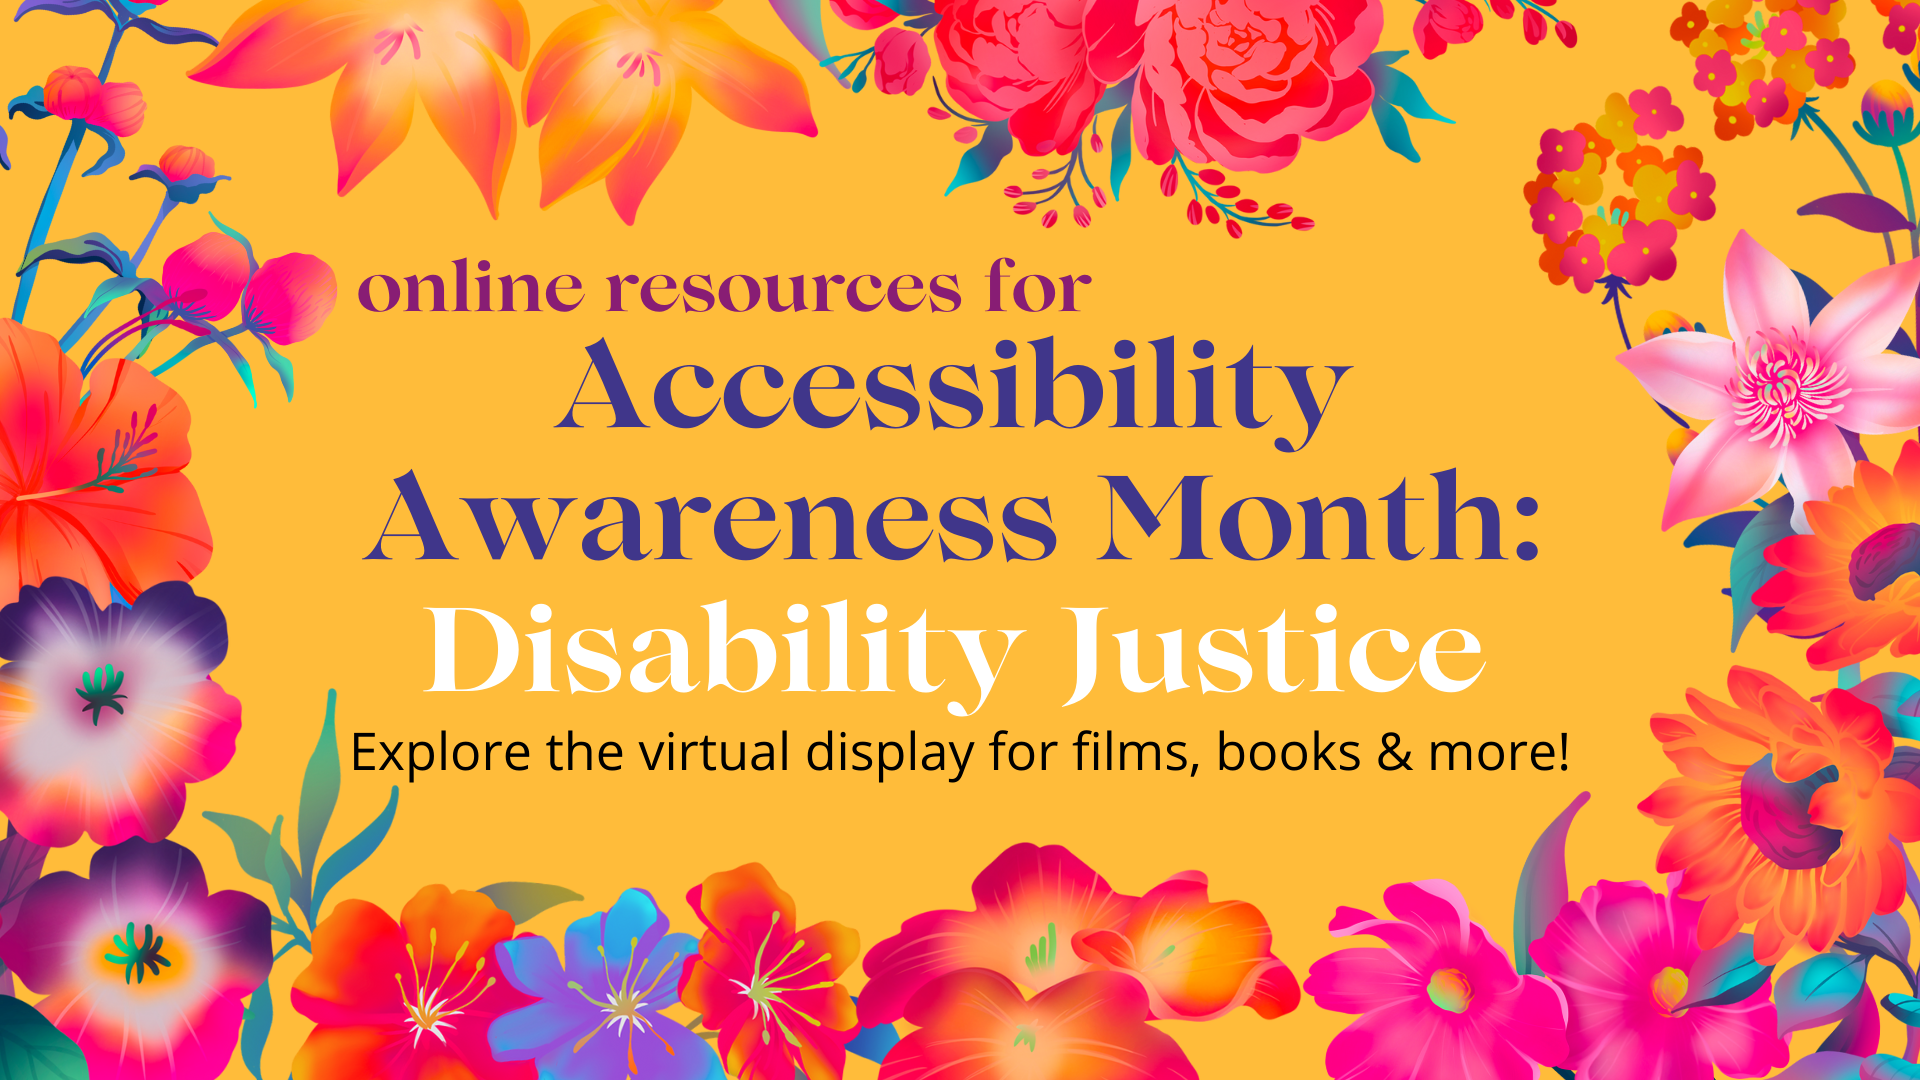 Accessibility Awareness Month: Disability Justice